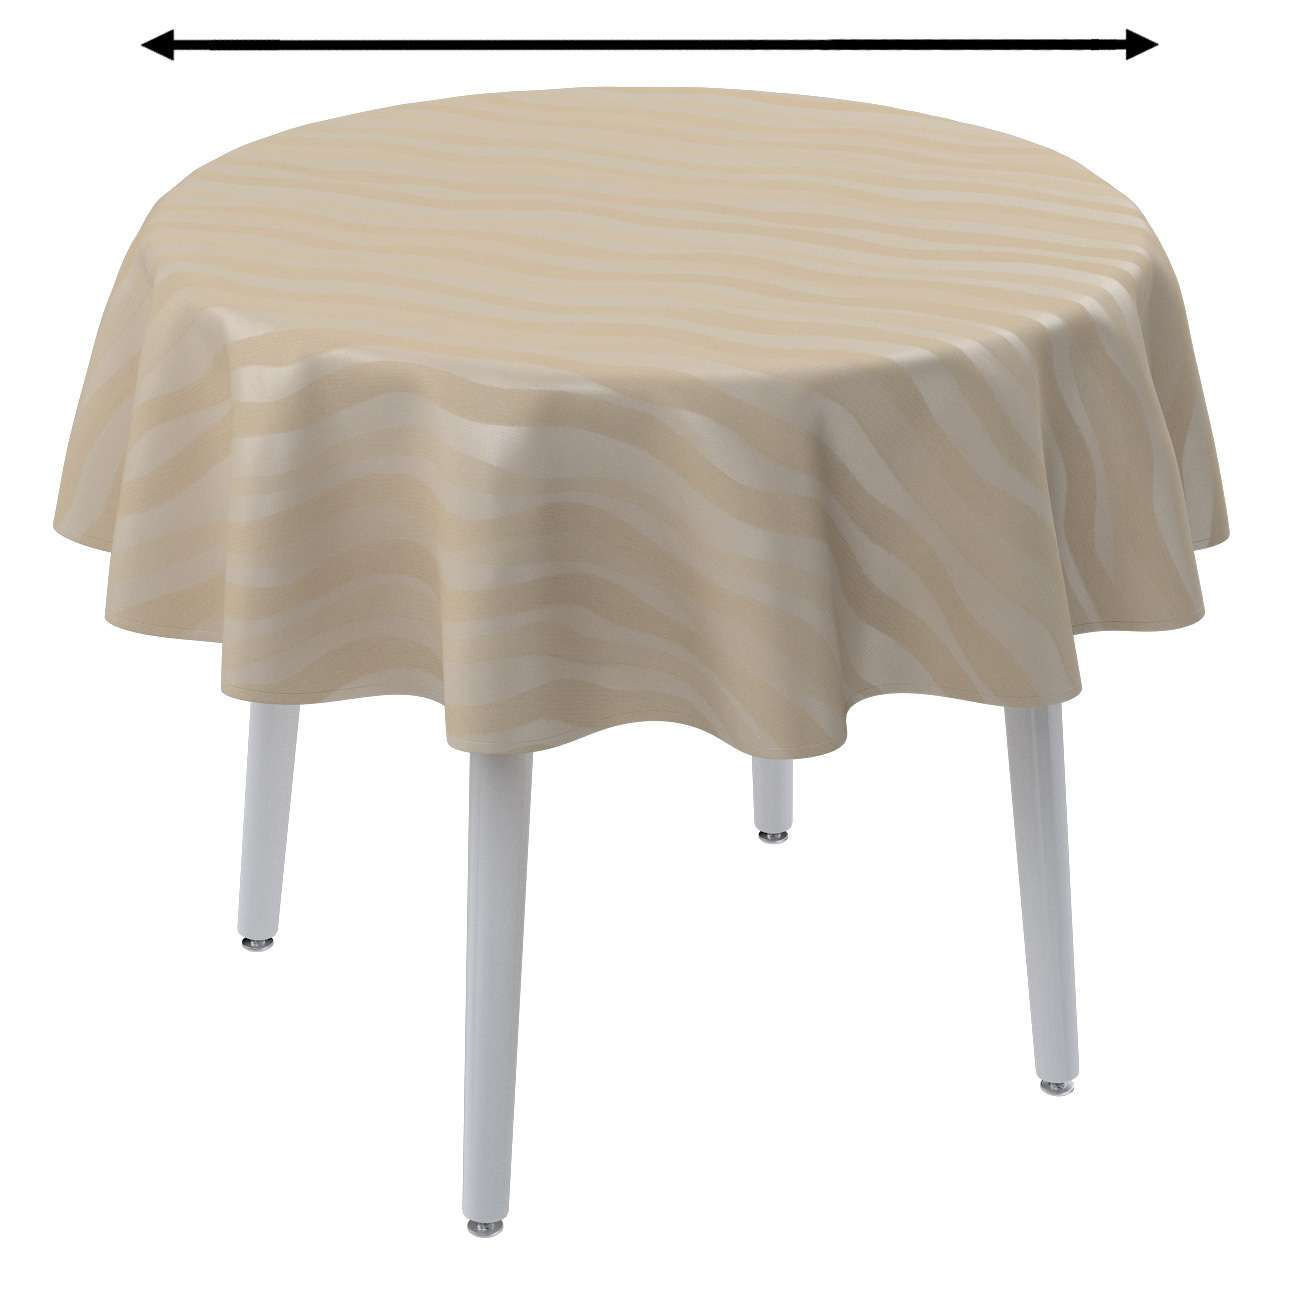 Round tablecloth in collection Damasco, fabric: 141-76